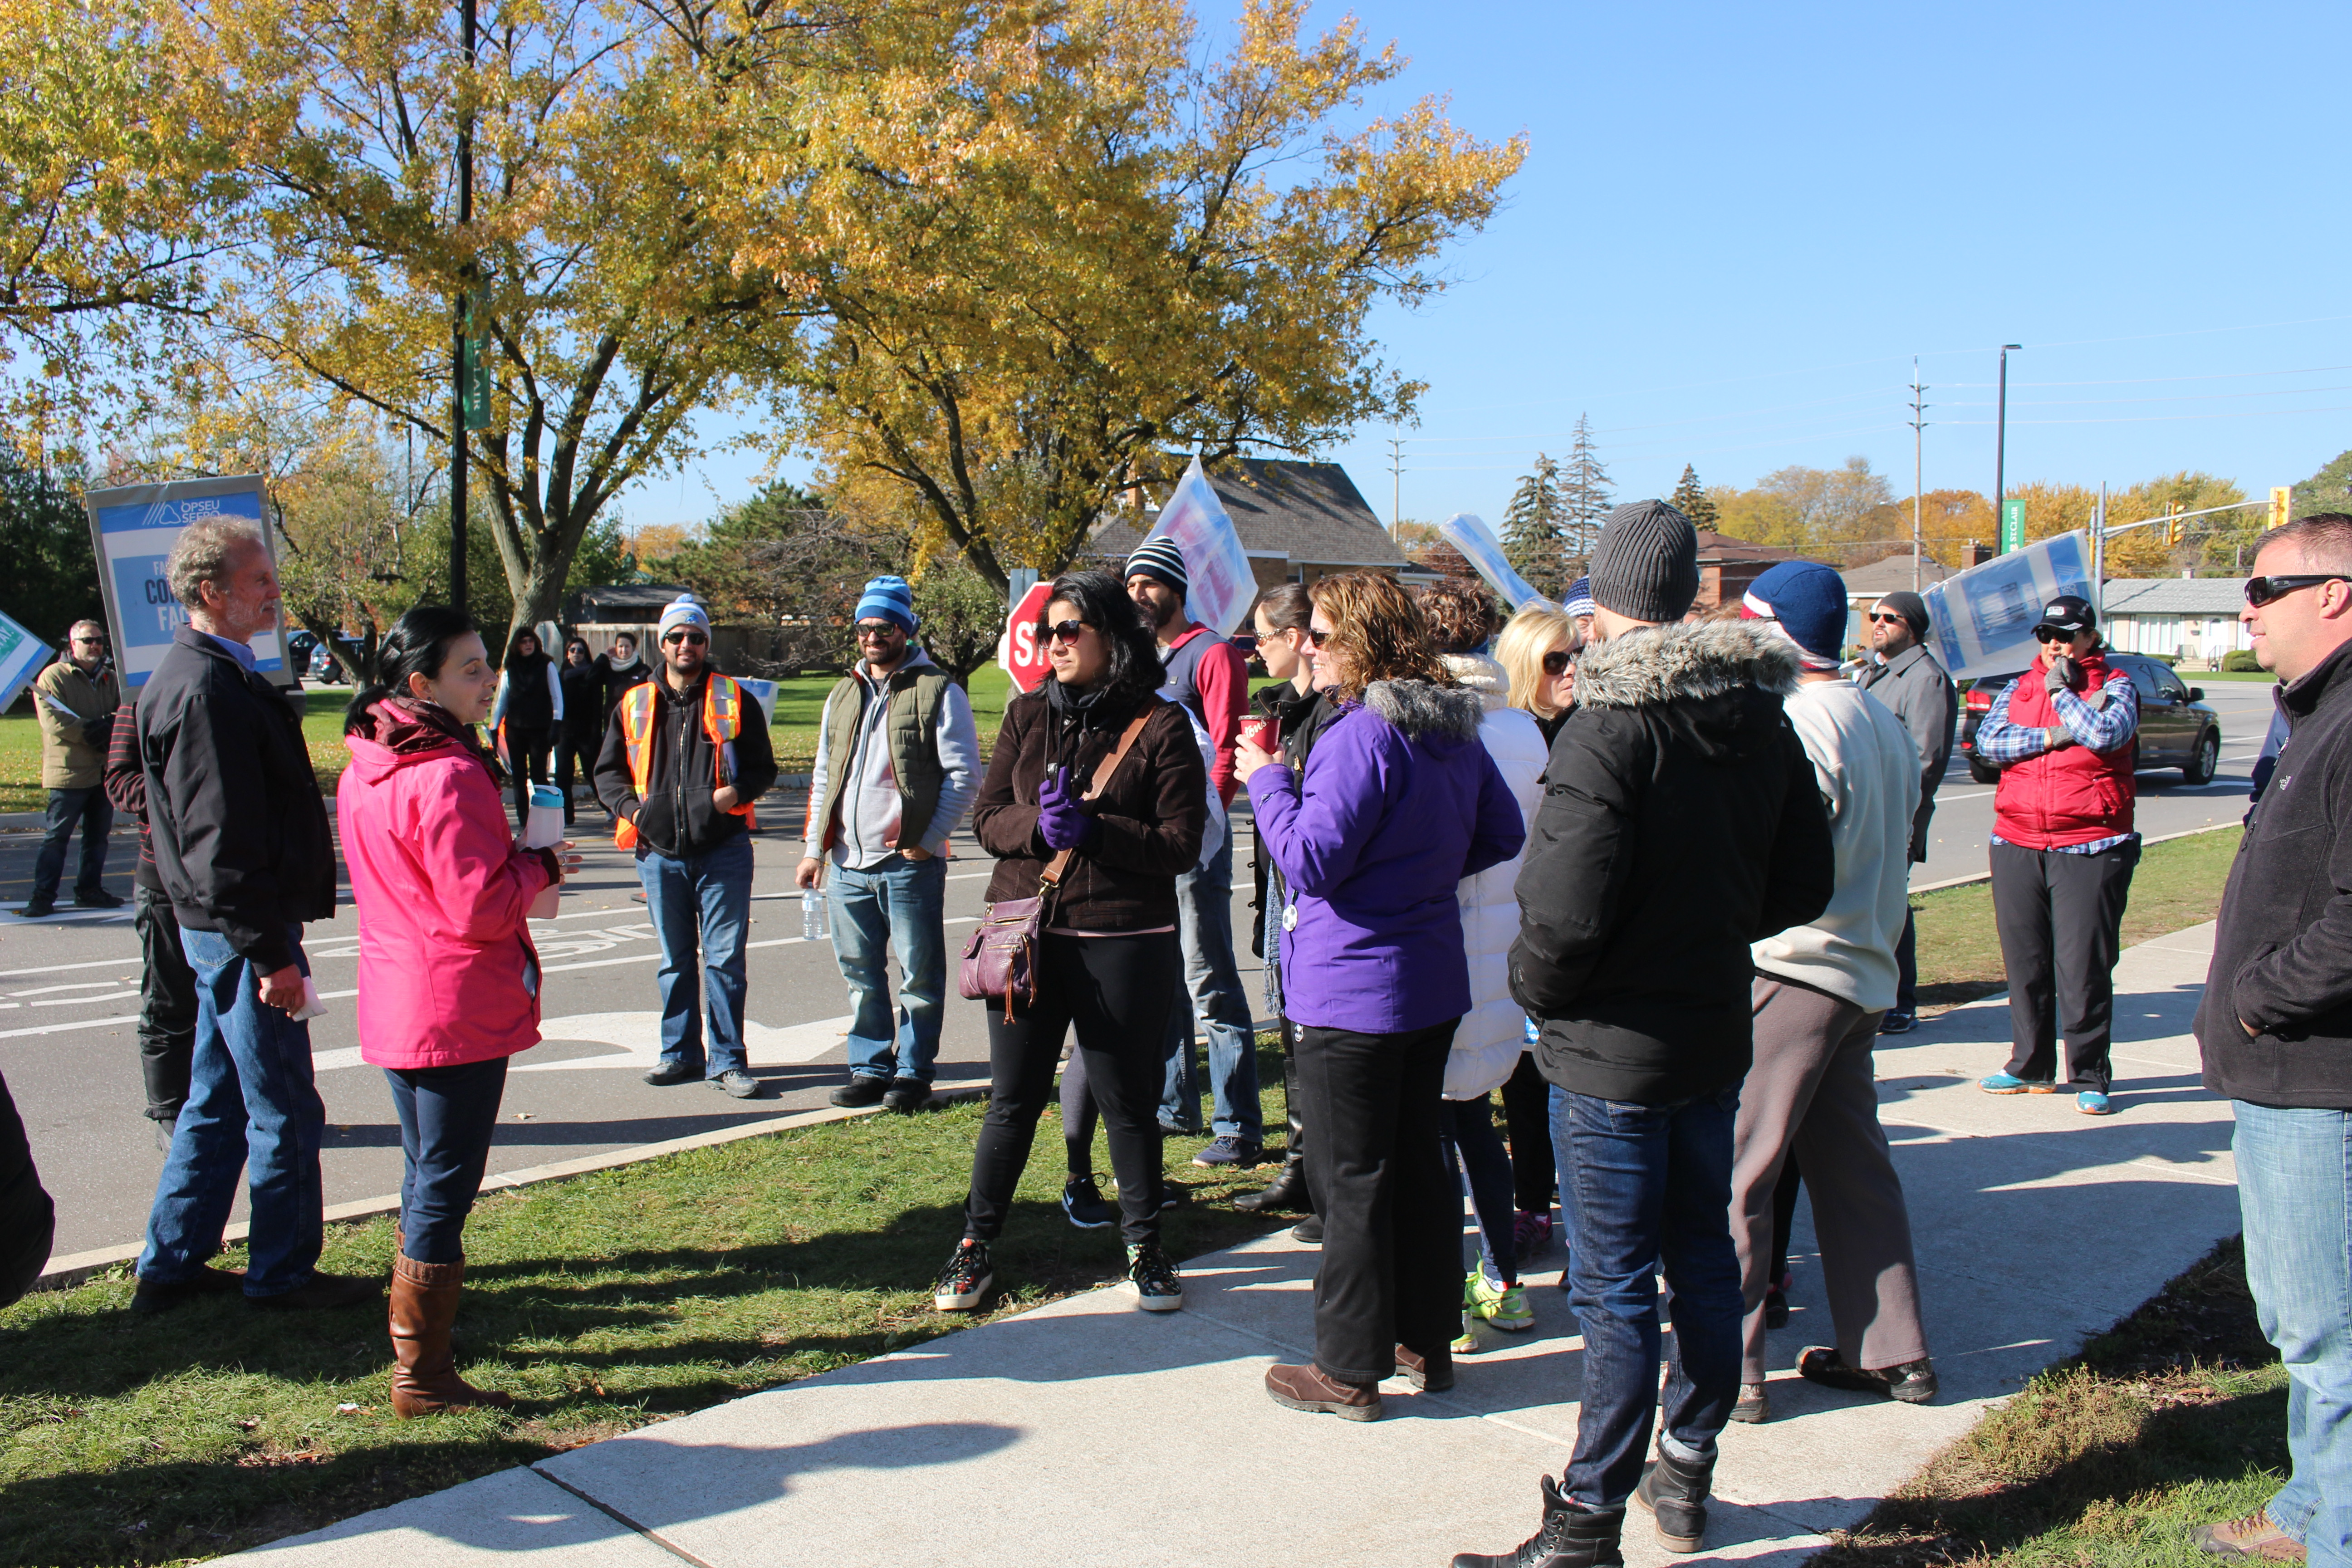 Reported Union Demand Complicates Prospective Collective Agreement